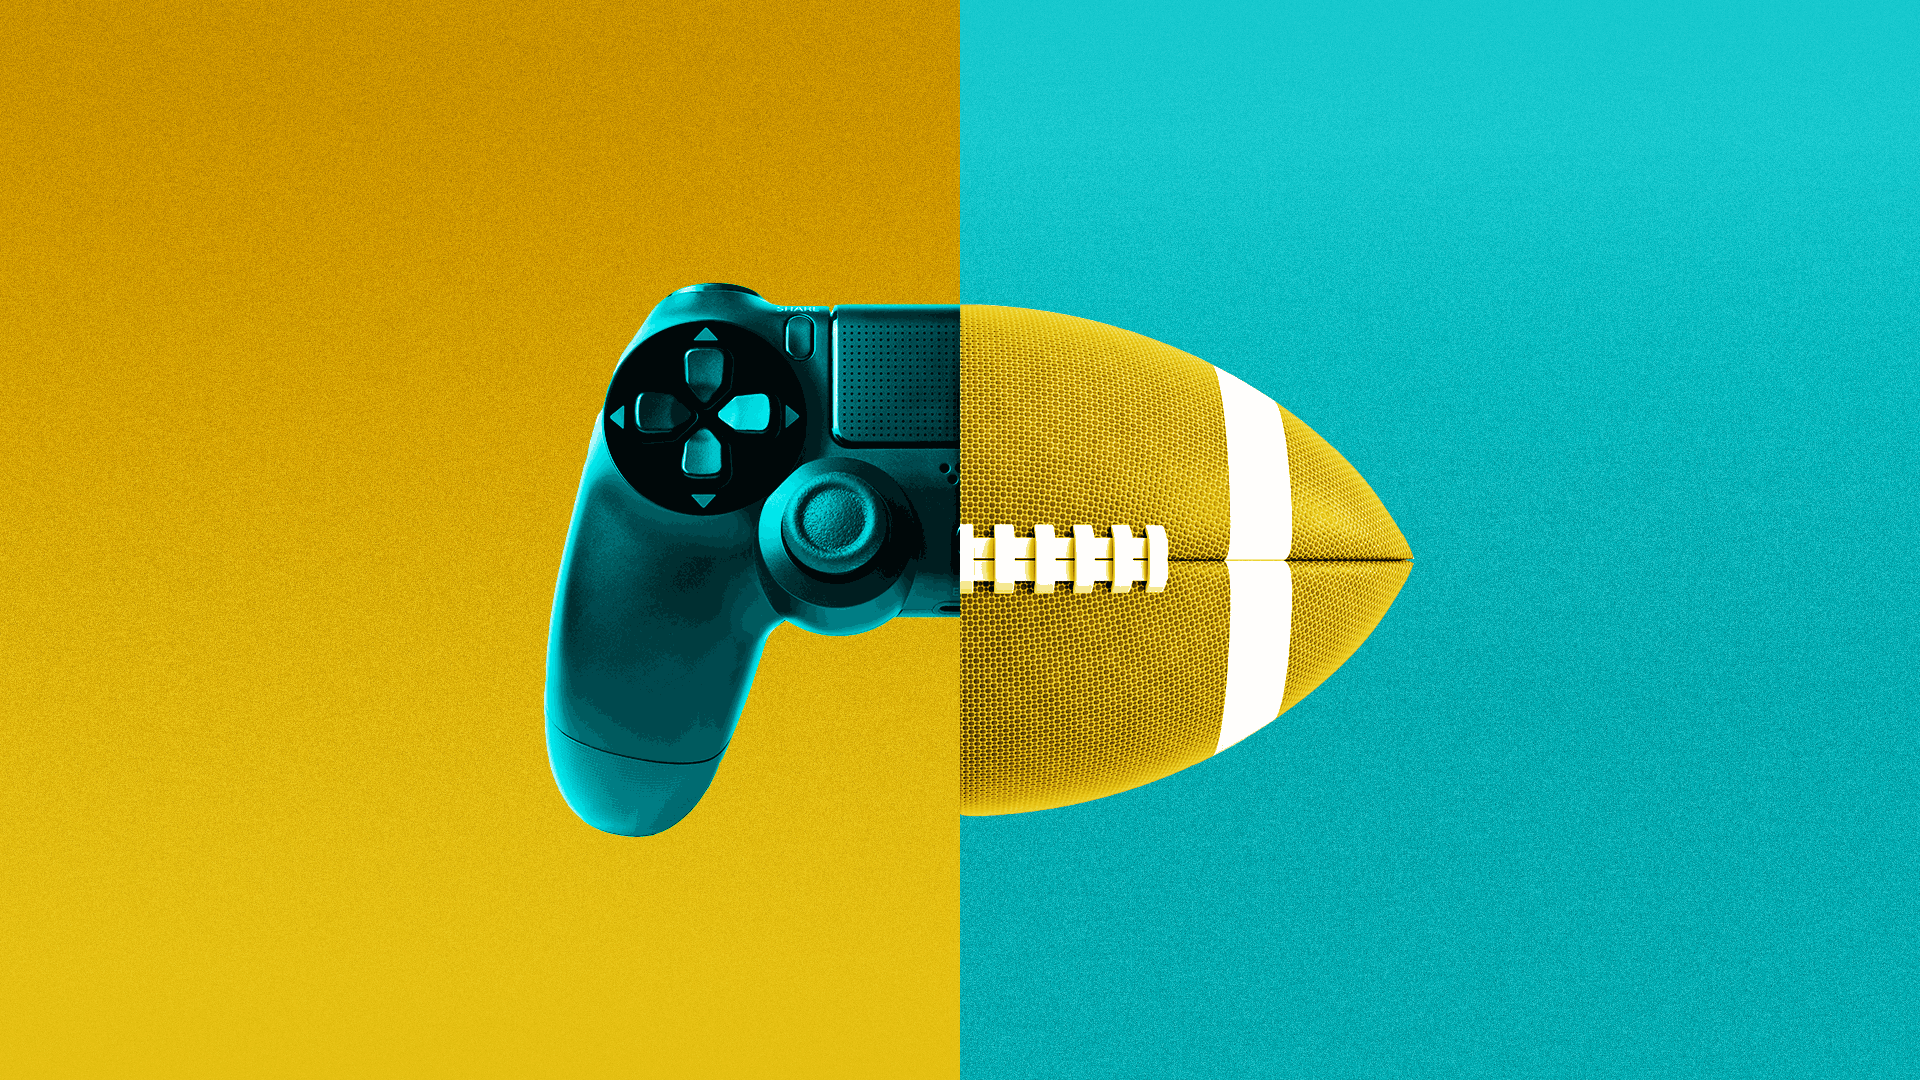 Video game controller combined with a football